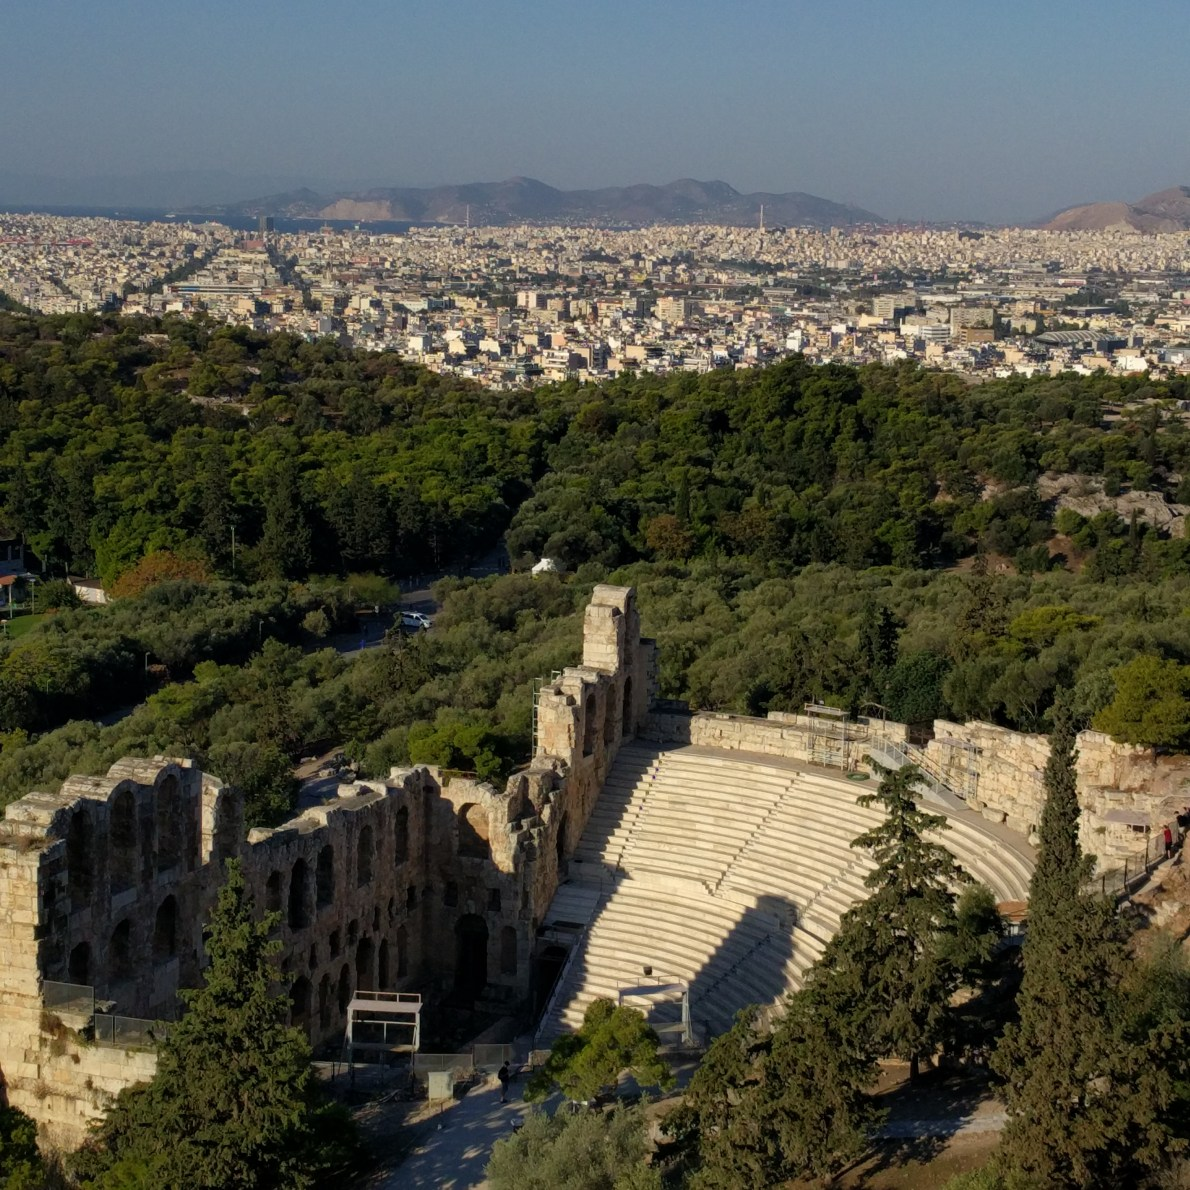 Odeon of Herodes The Atticus